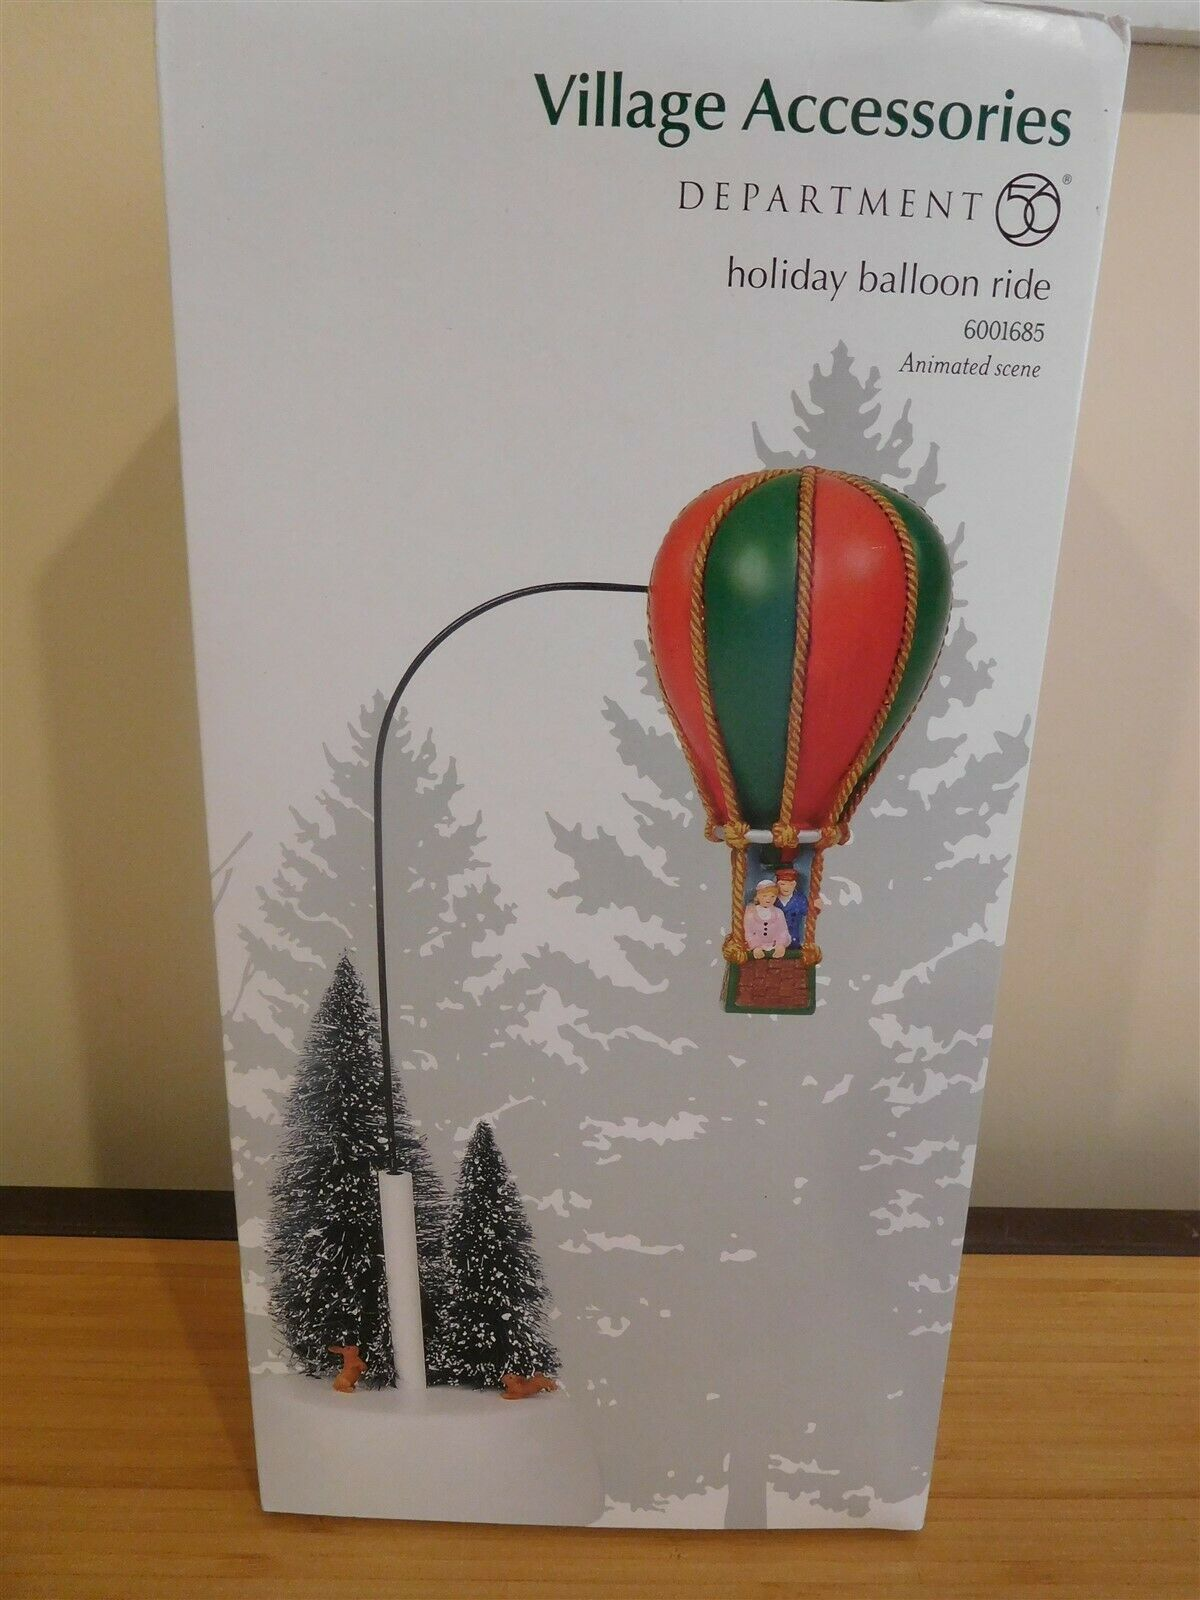 Dept 56 Village Accessories - Animated Holiday Balloon Ride - NIB